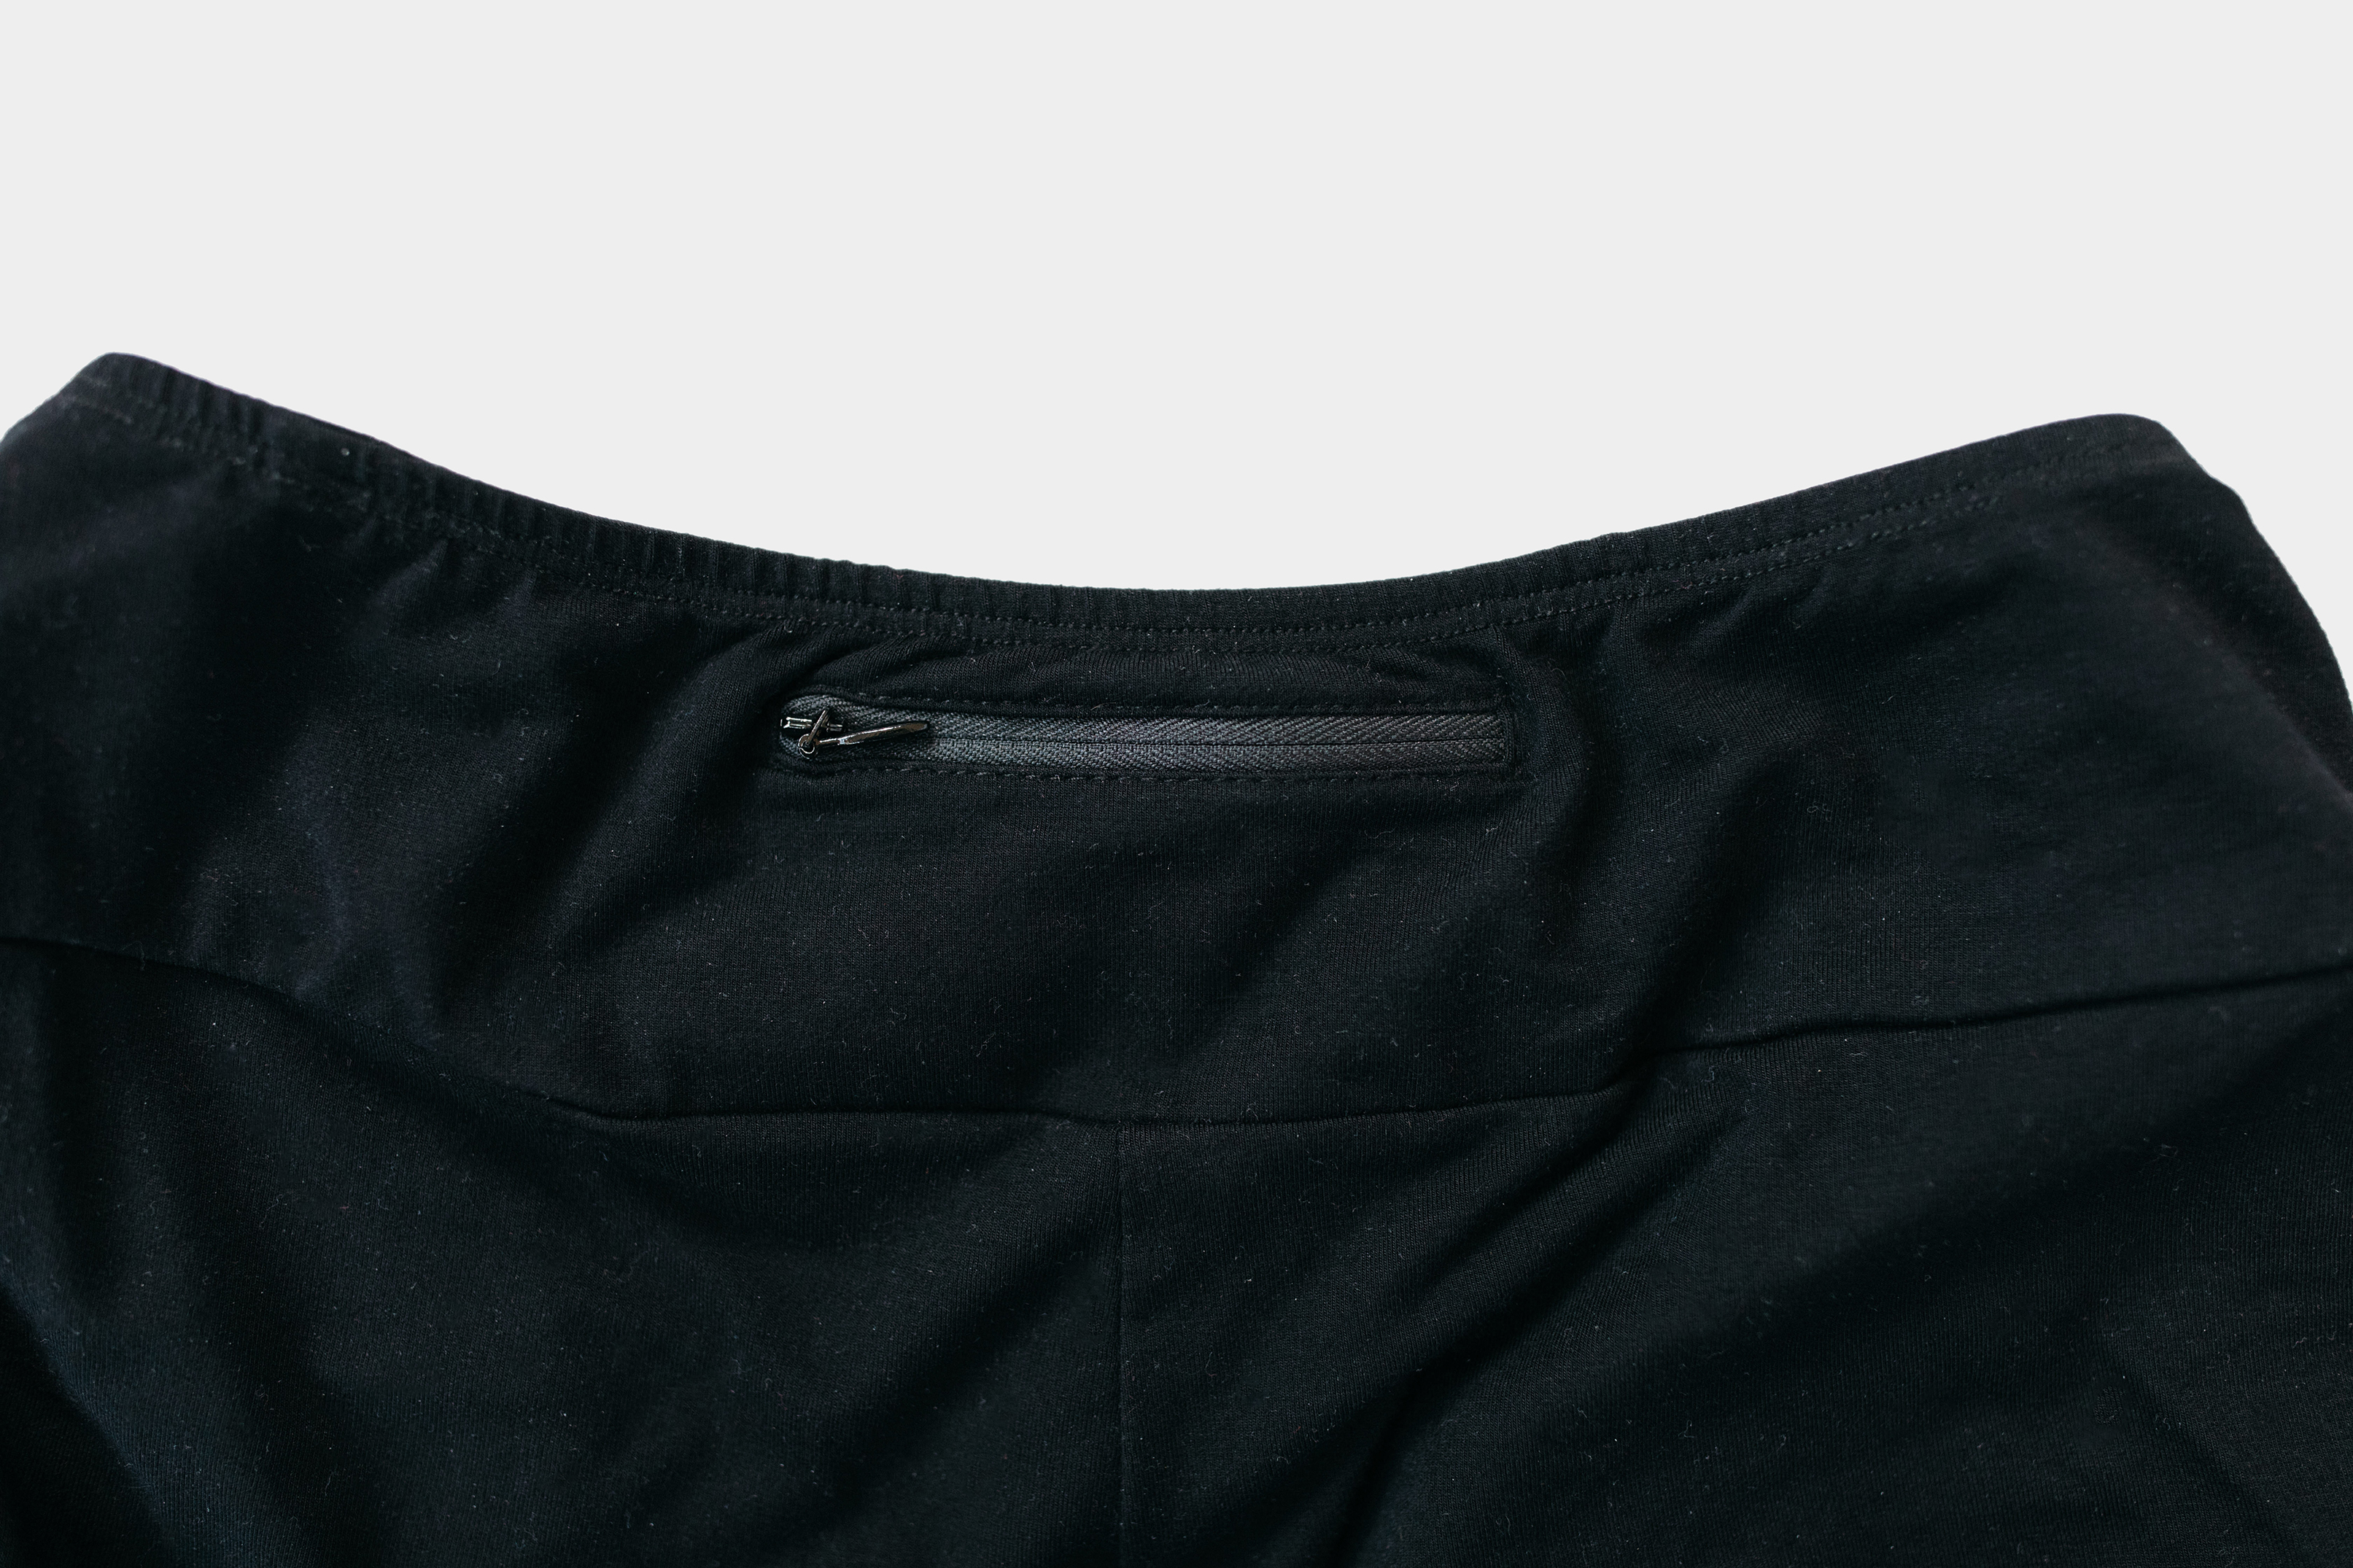 Dressy Sweatpant hidden pocket in the waistband